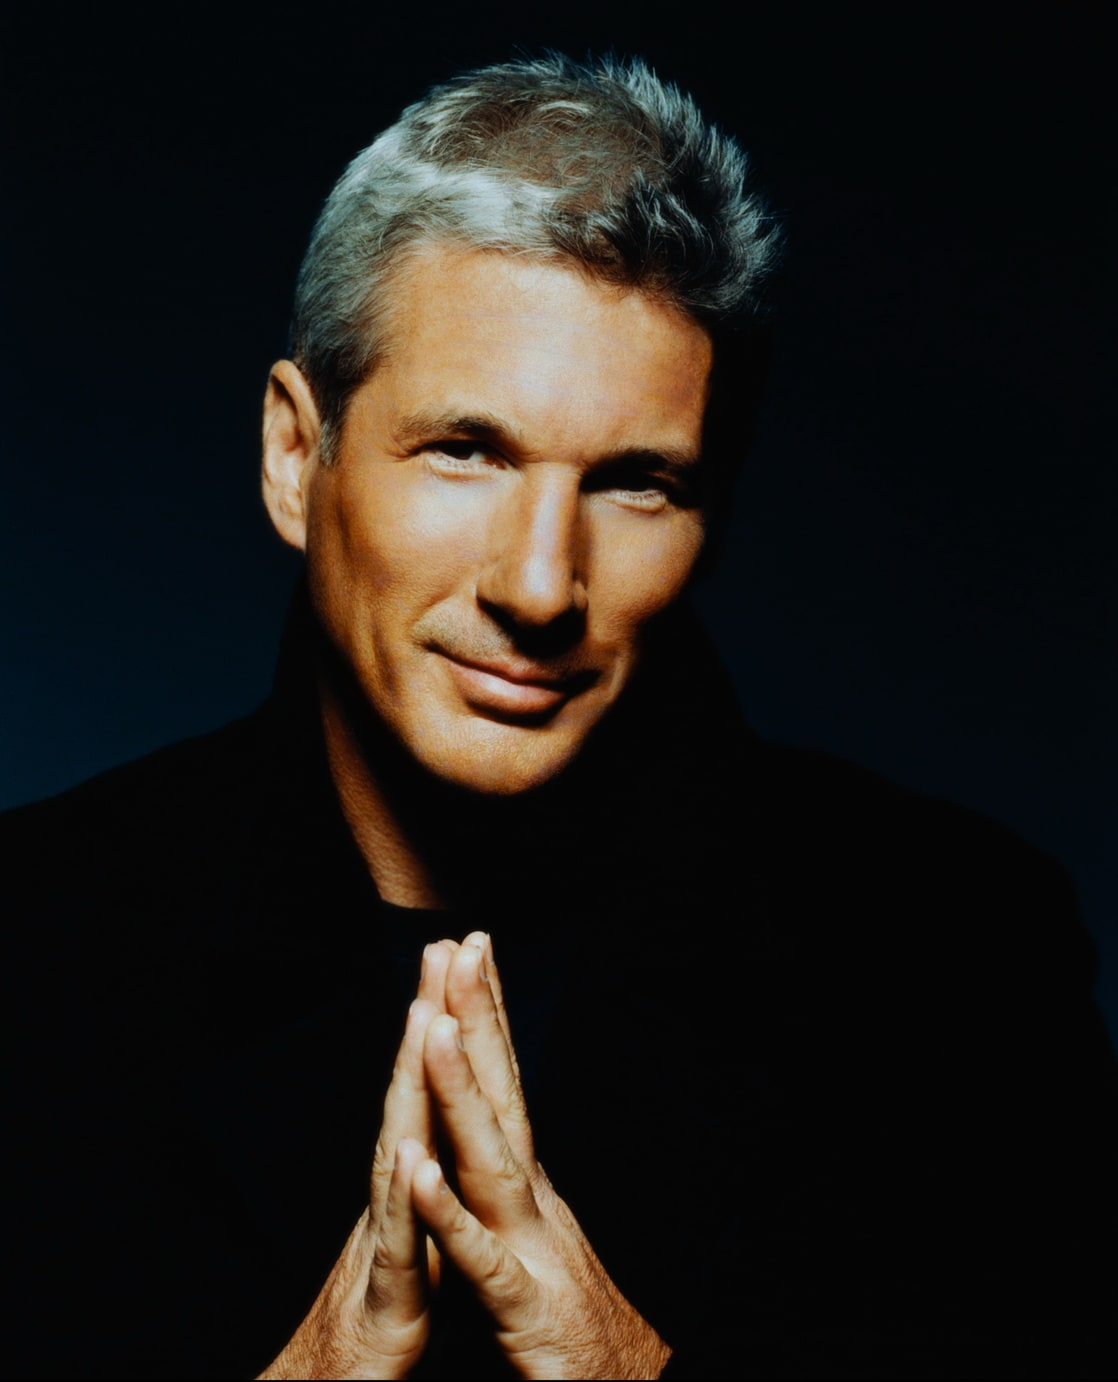 richard gere - photo #12